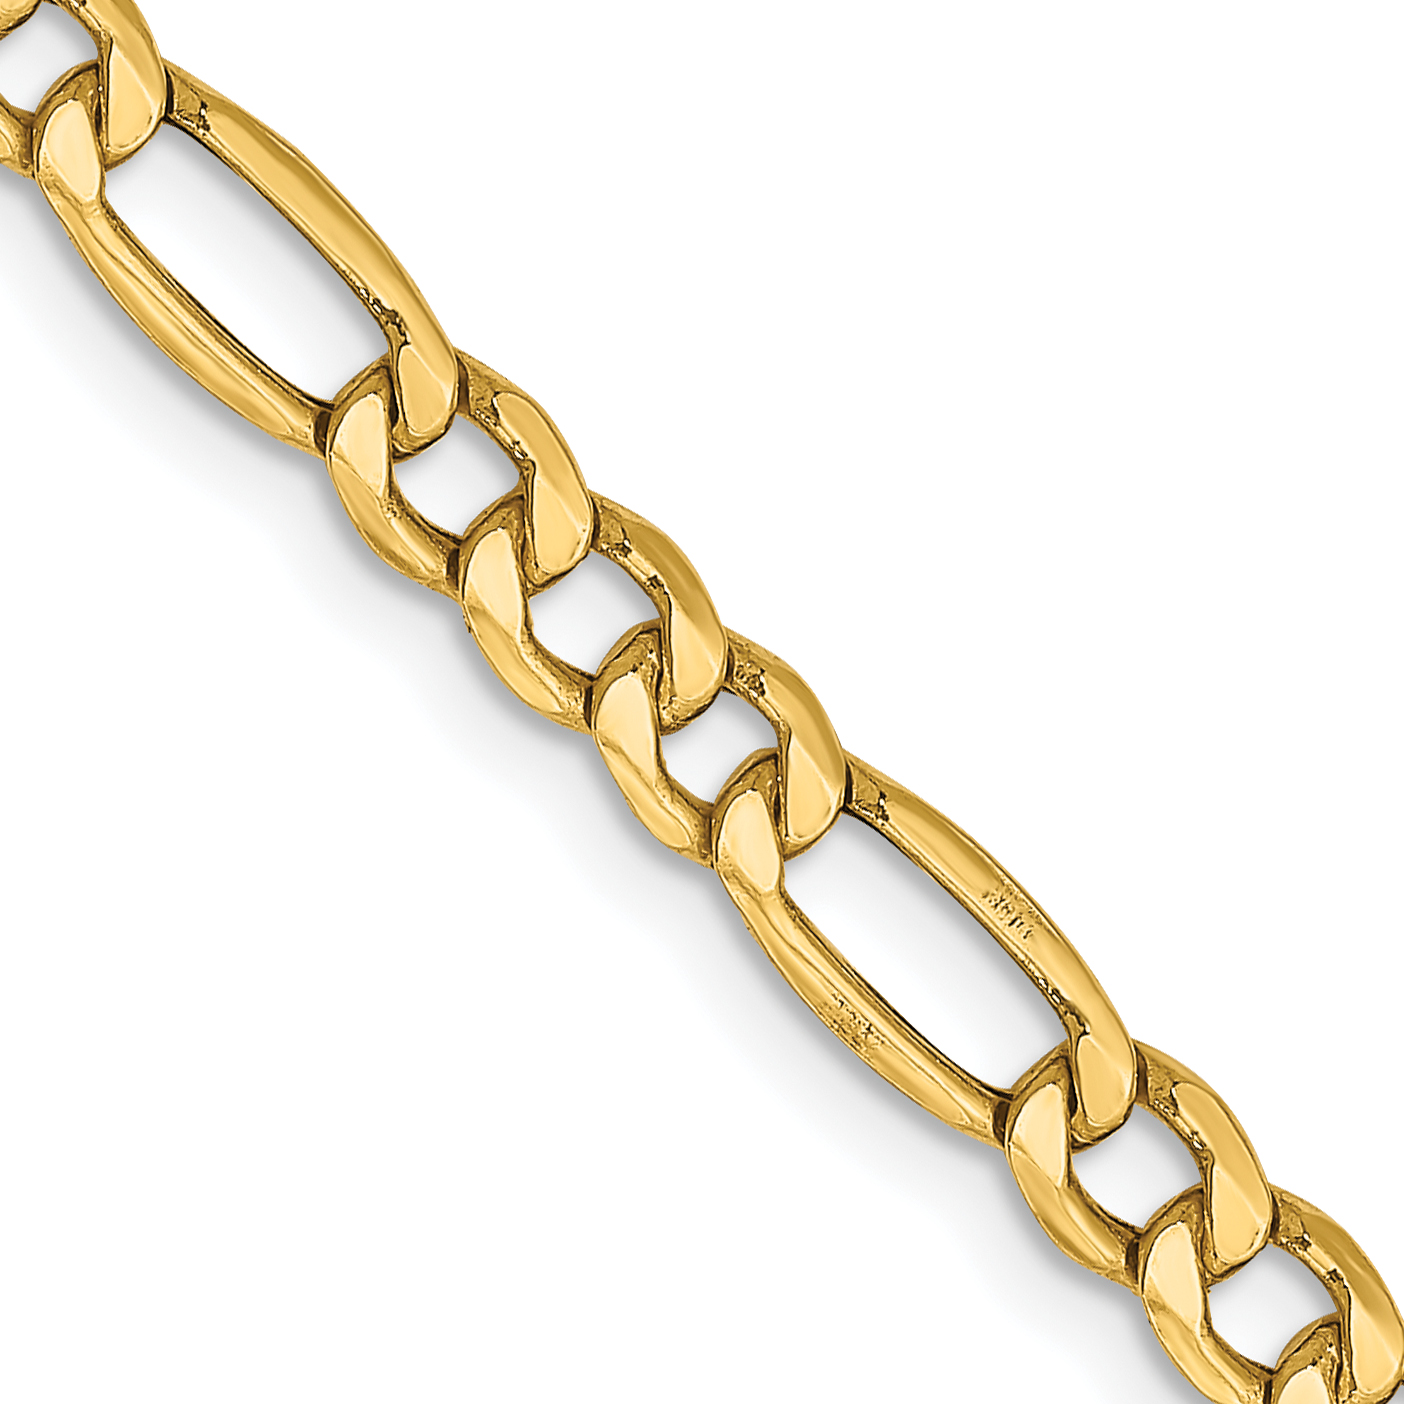 10k 4.4mm Semi-Solid Figaro Chain. Weight: 4.56,  Length: 16